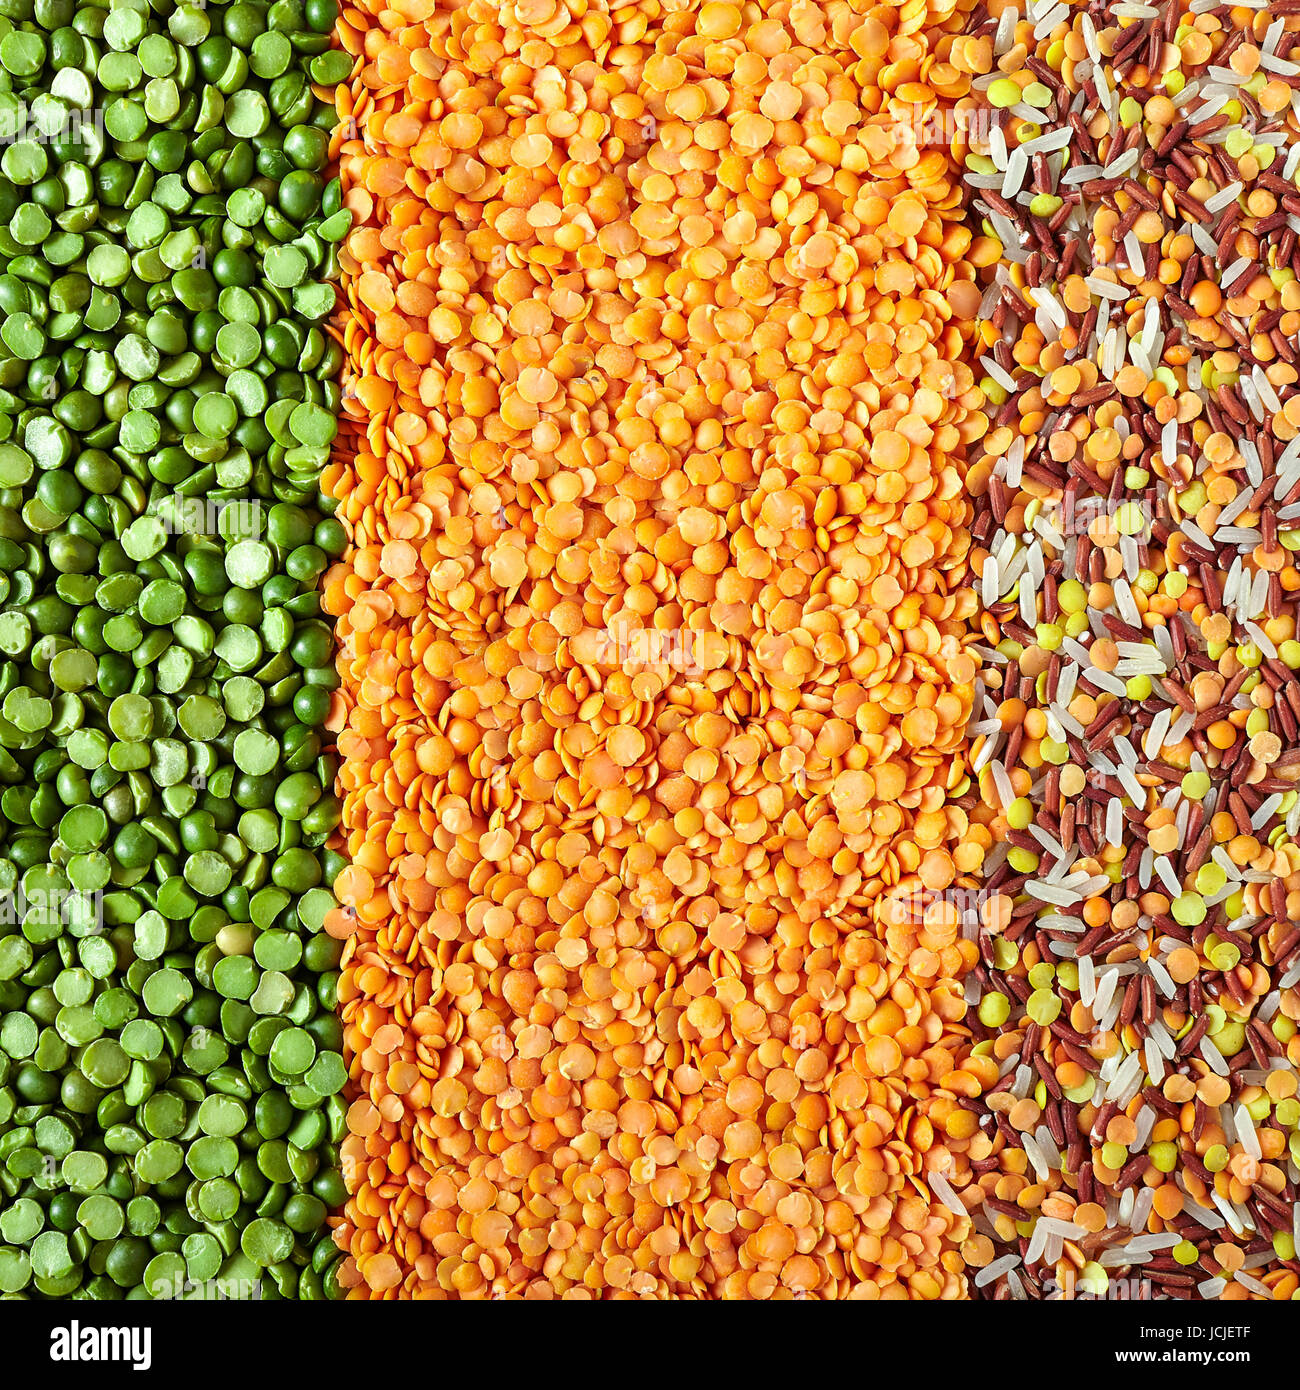 Vertical layers of dried legumes, from left to right: green split peas, red lentils and mix of red Thai rice, white Stock Photo